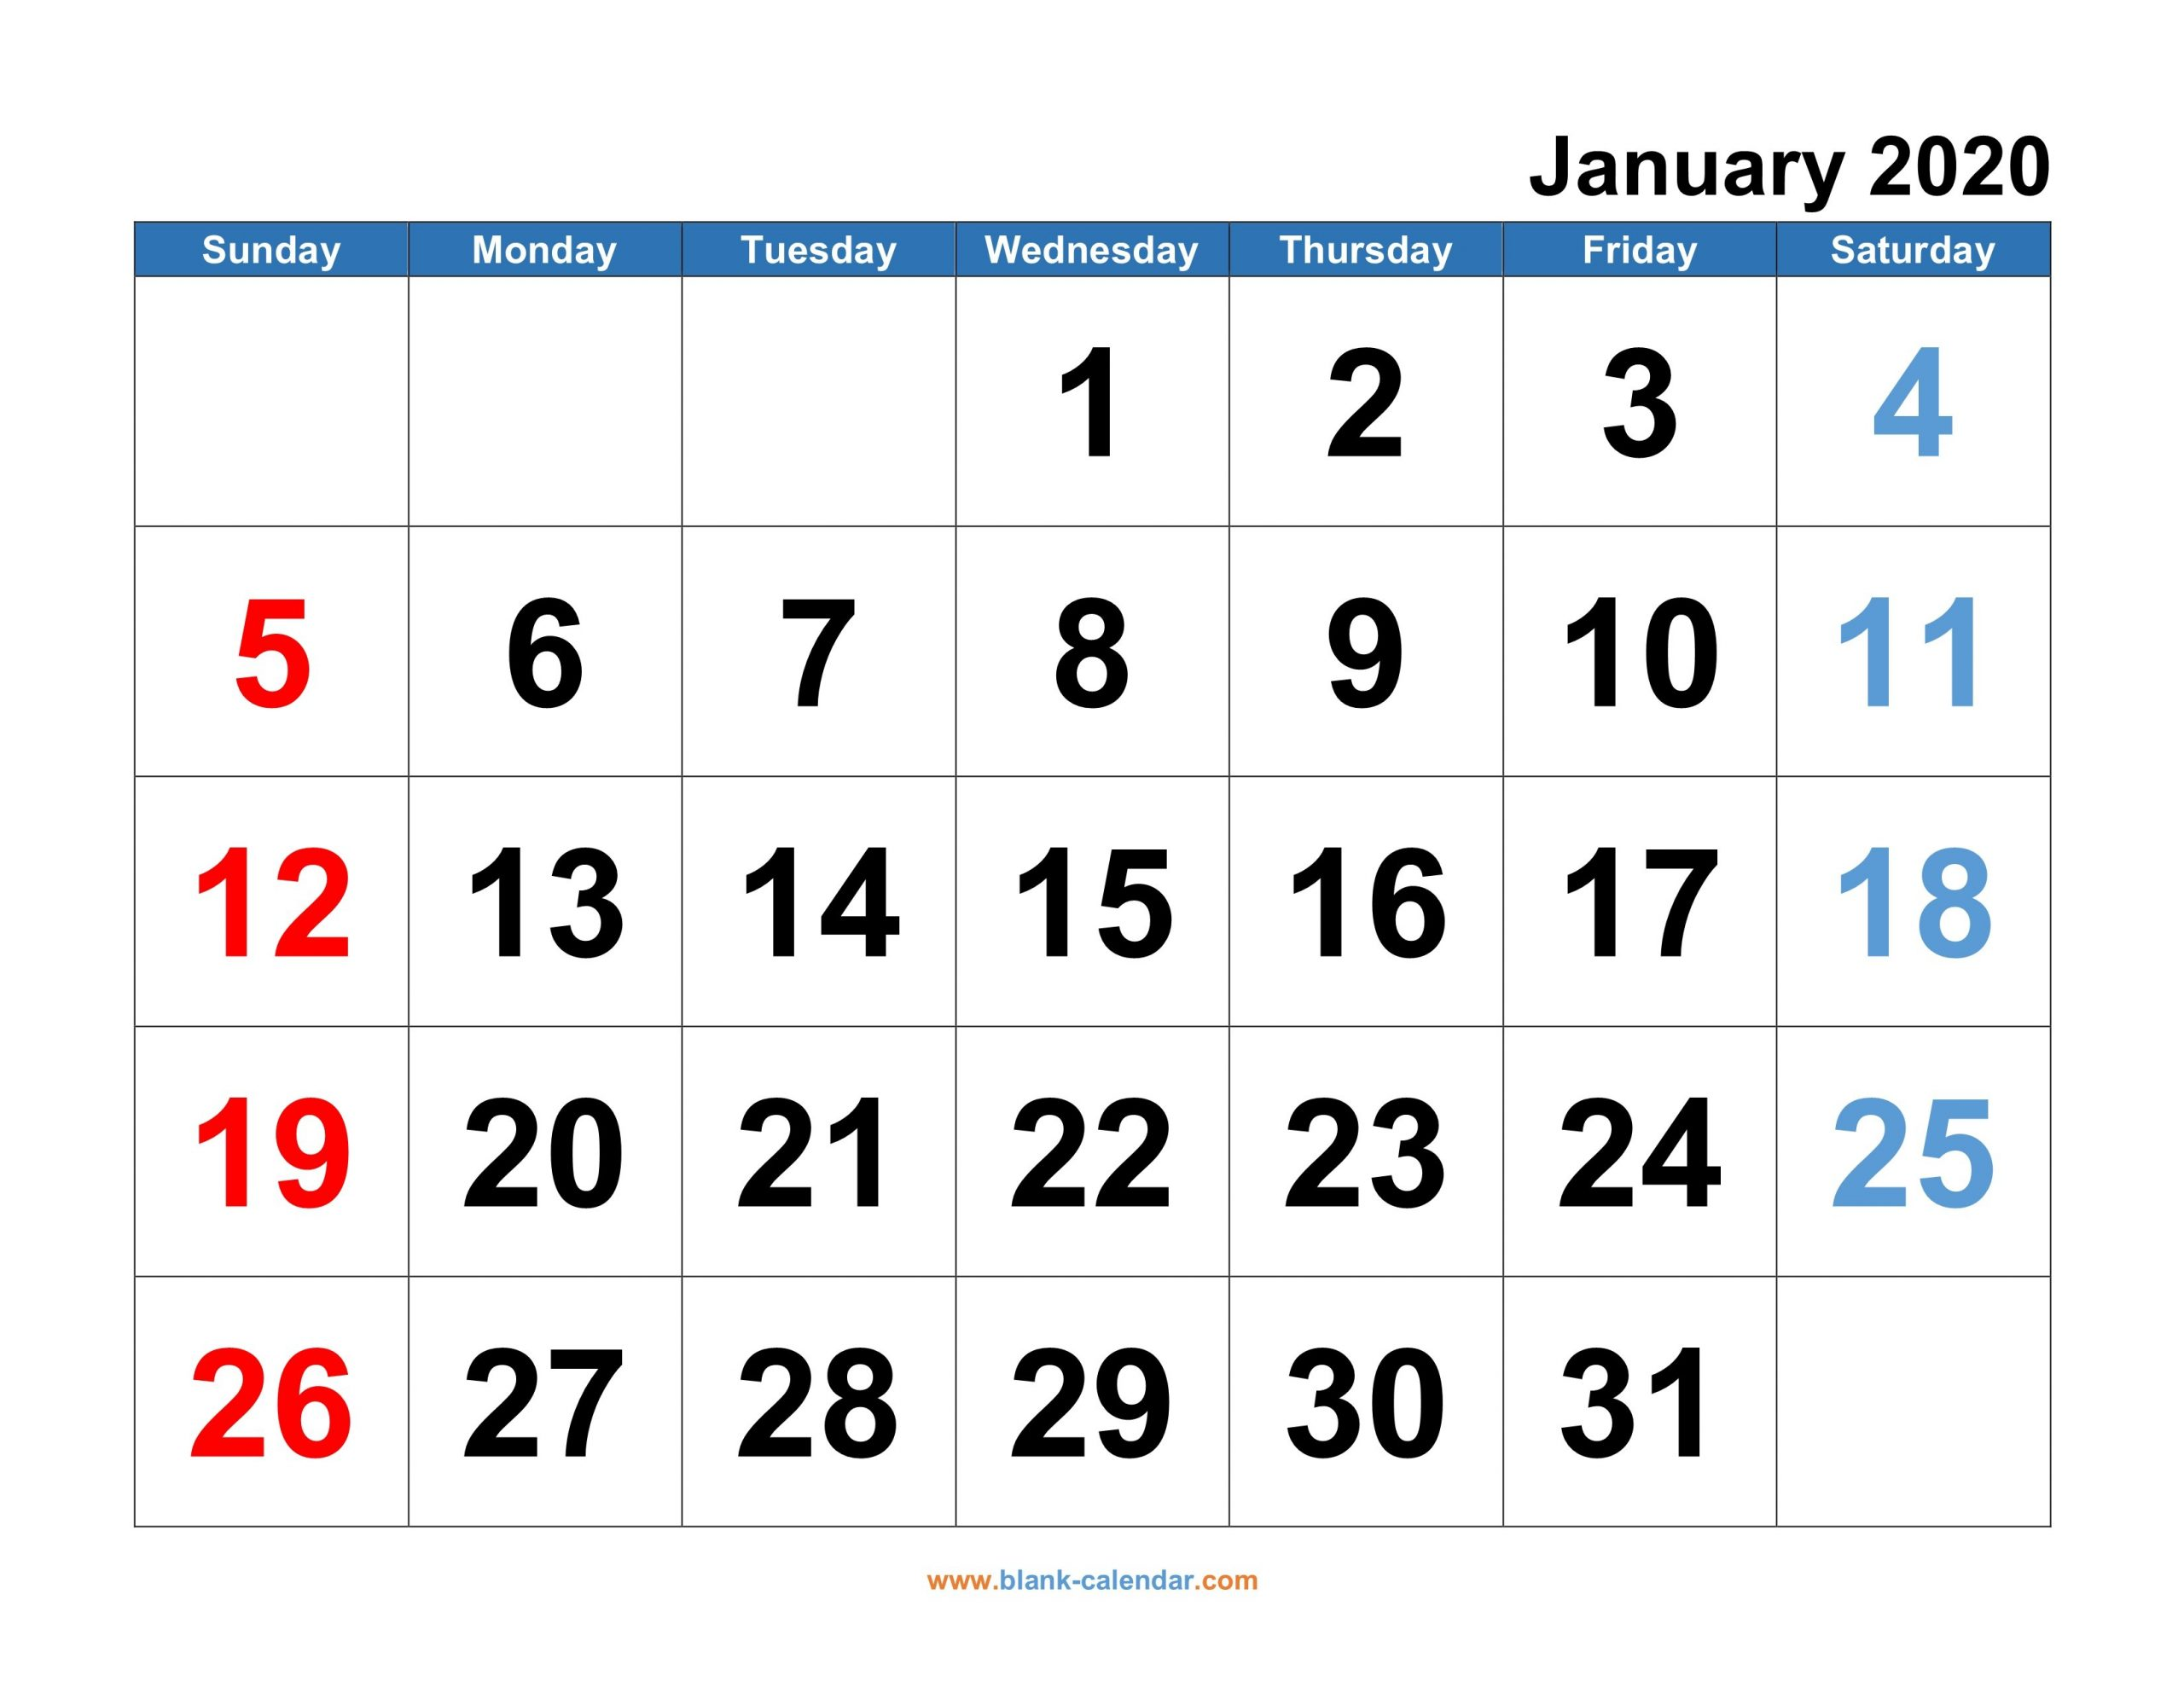 Monthly Calendar 2020 | Free Download, Editable And Printable Monthly Calendars You Can Edit